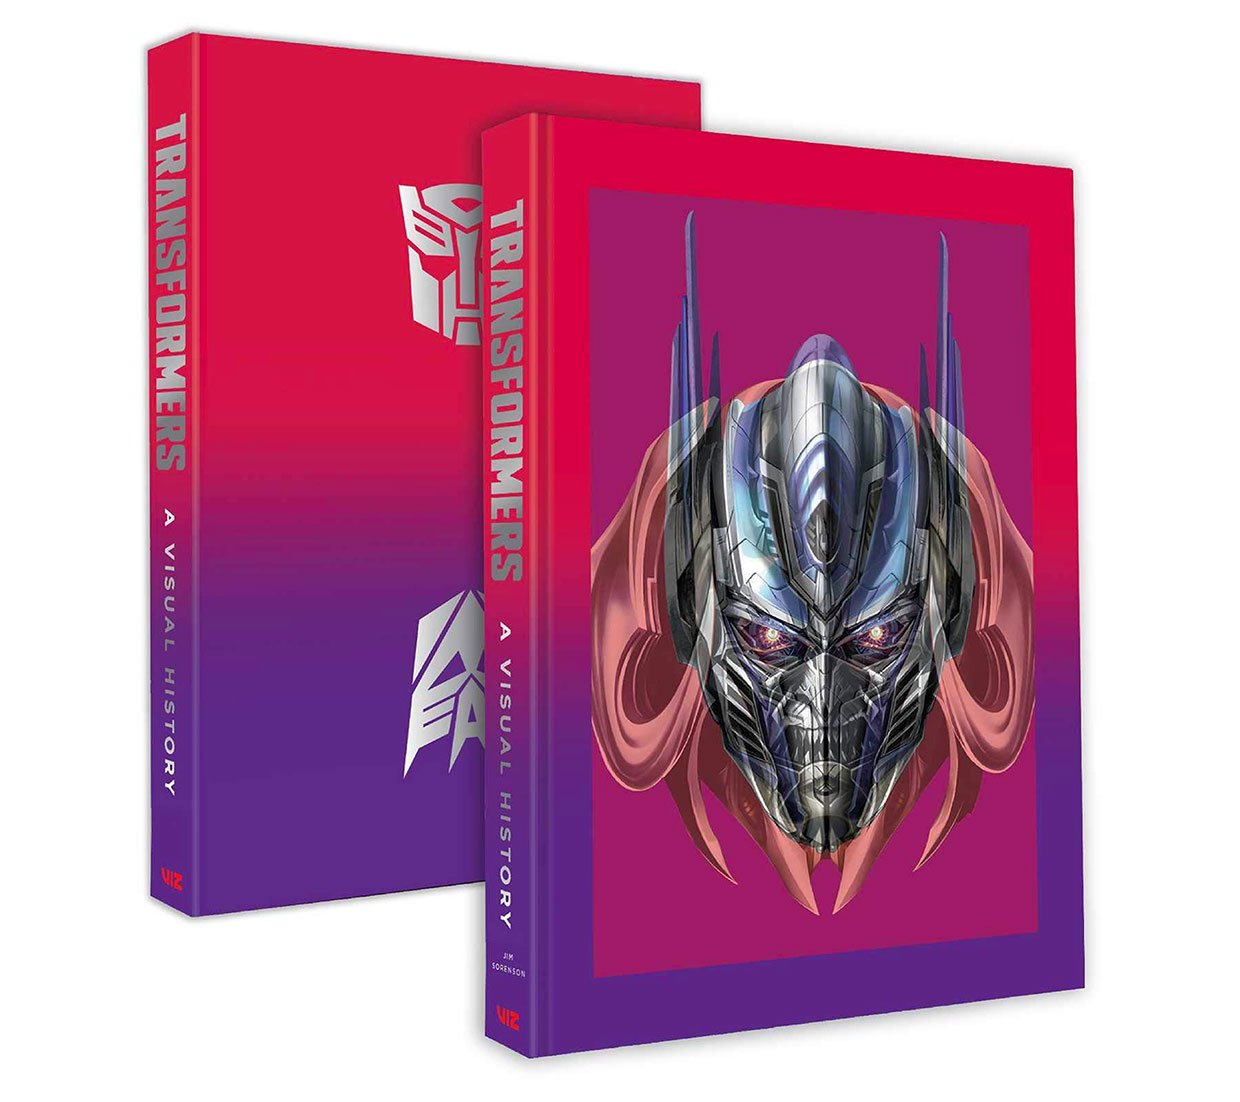 """""""Transformers: A Visual History"""" Is a Must-Have for Any Transformers Fan """"Transformers: A Visual History"""" Is a Must-Have for Any Transformers Fan"""